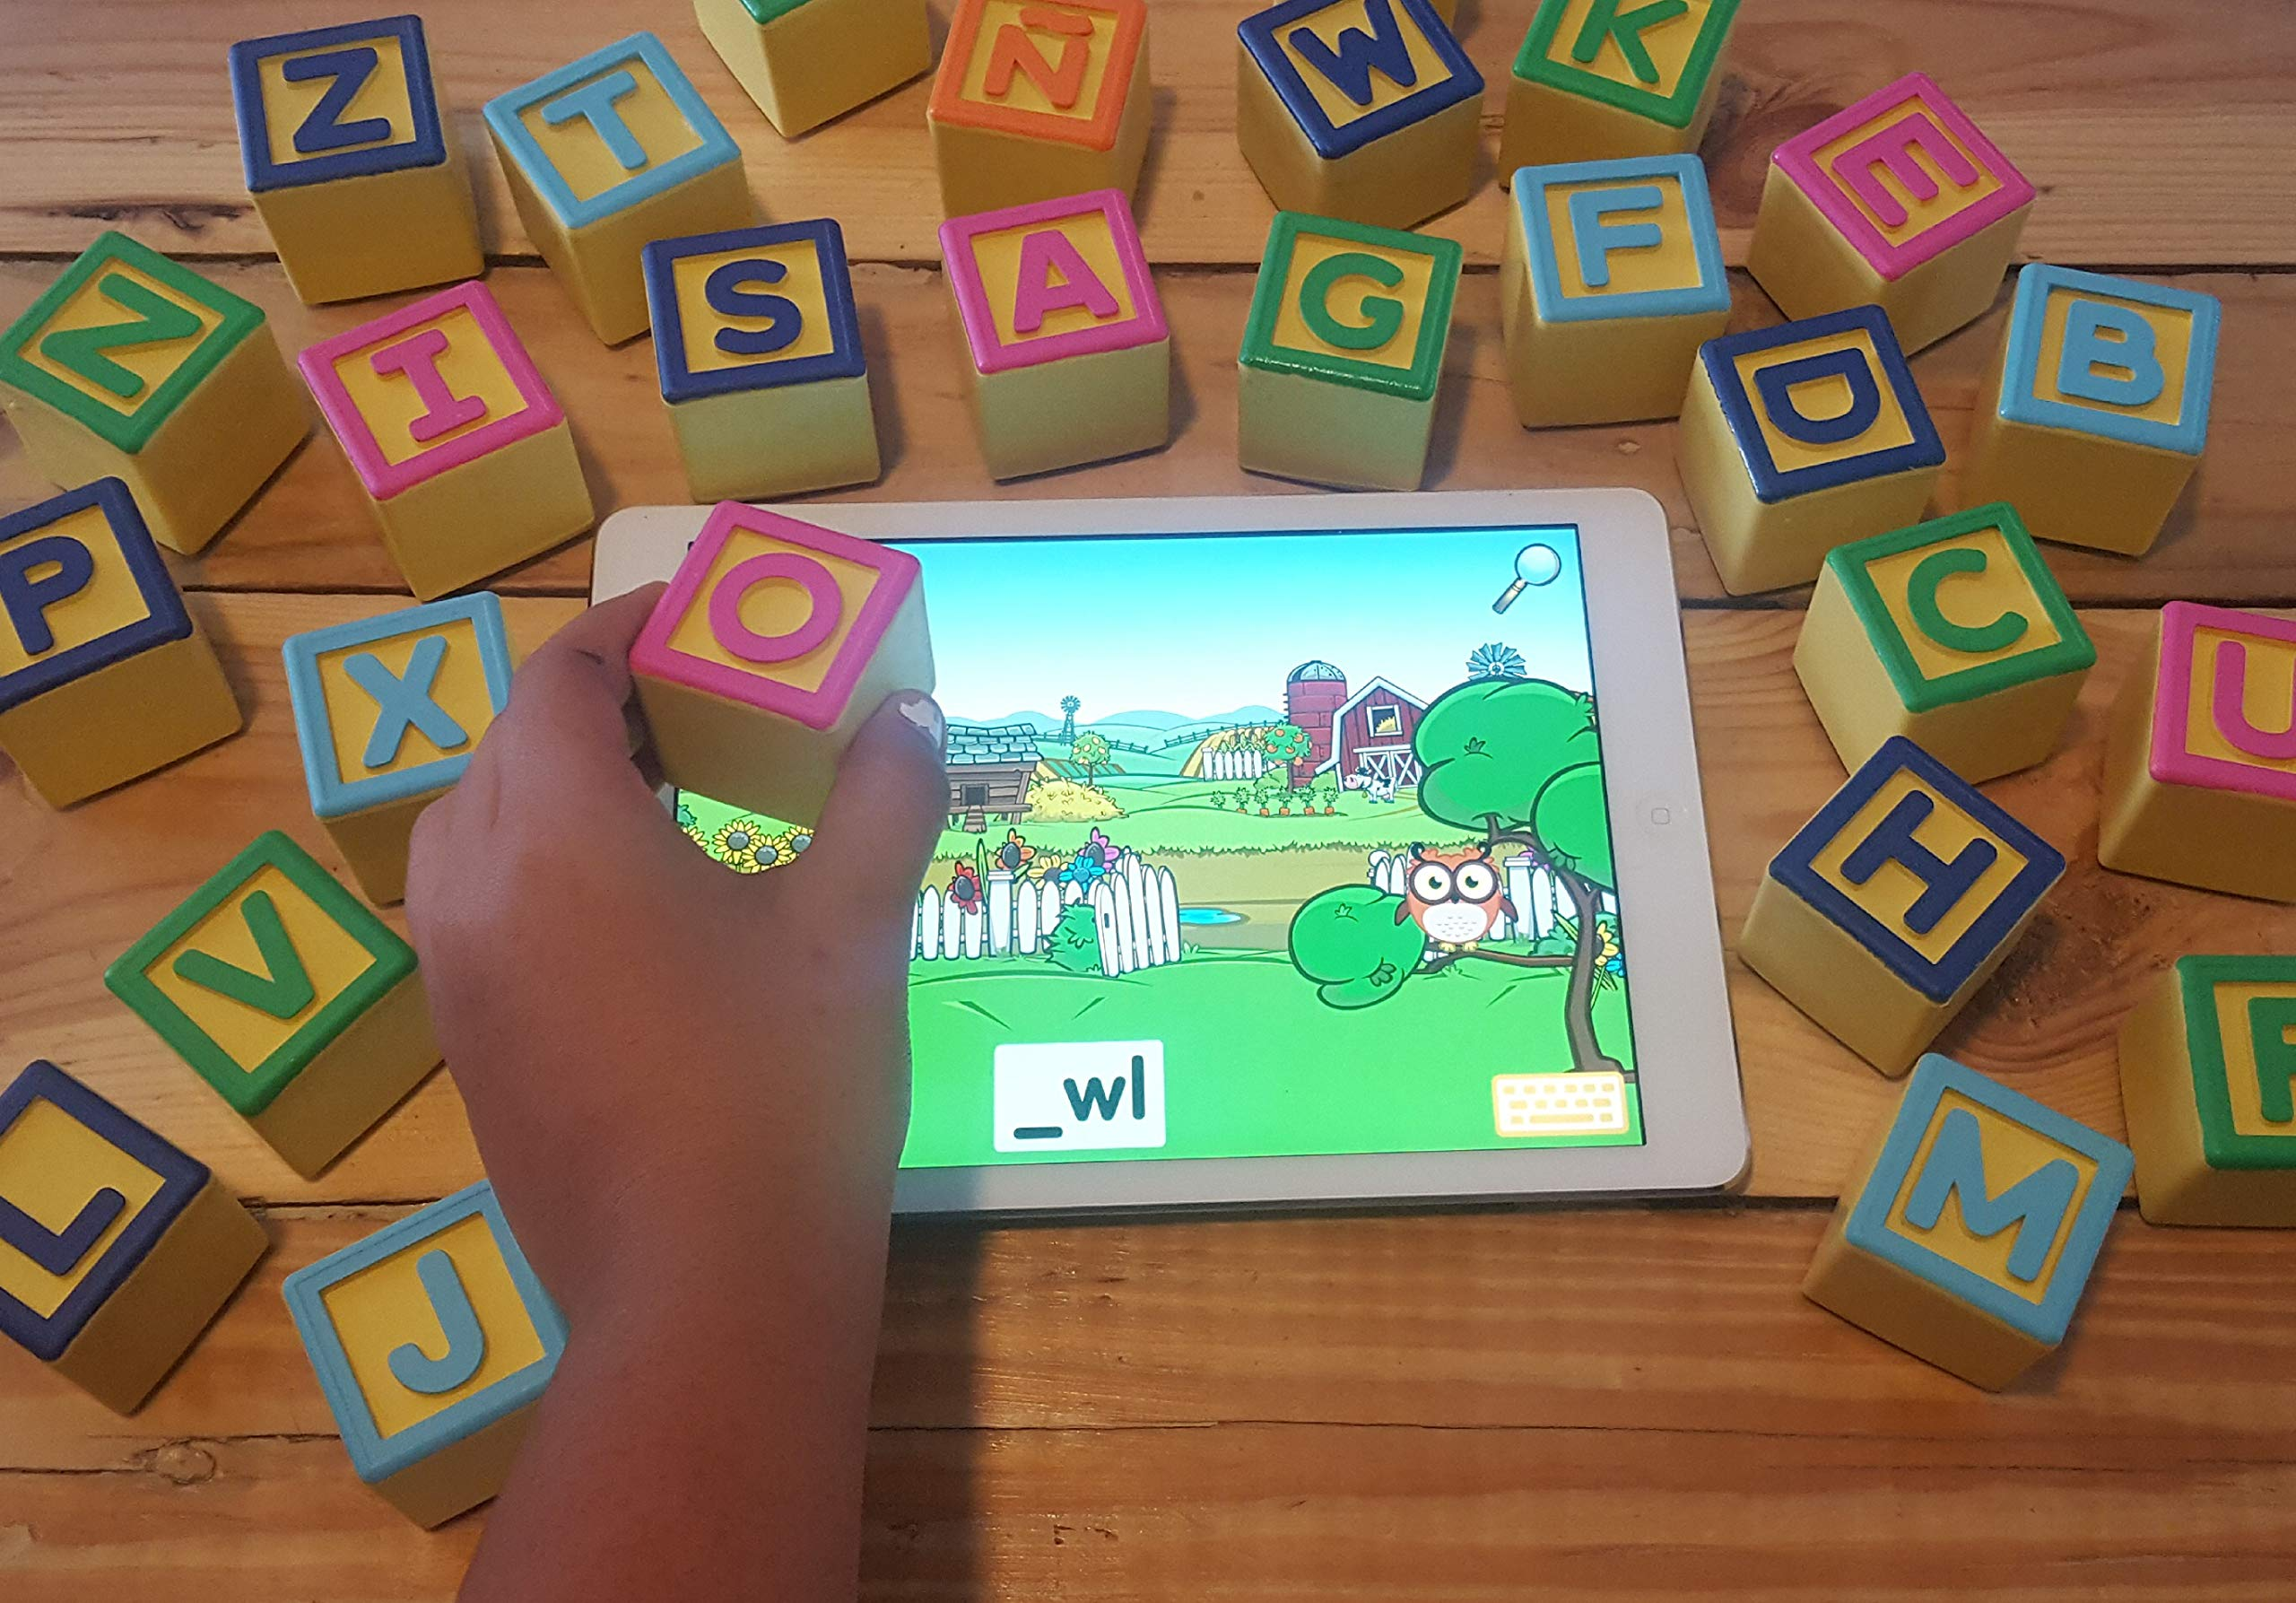 Montessori Toys for ABC Learning | Smart Alphabet Blocks for Interactive Educational iPad Games for Preschool & Kindergarten | Learn English & Spanish | Toddlers & Kids 1-6 | Includes 5 Free Apps by AlphaTechBlocks (Image #7)